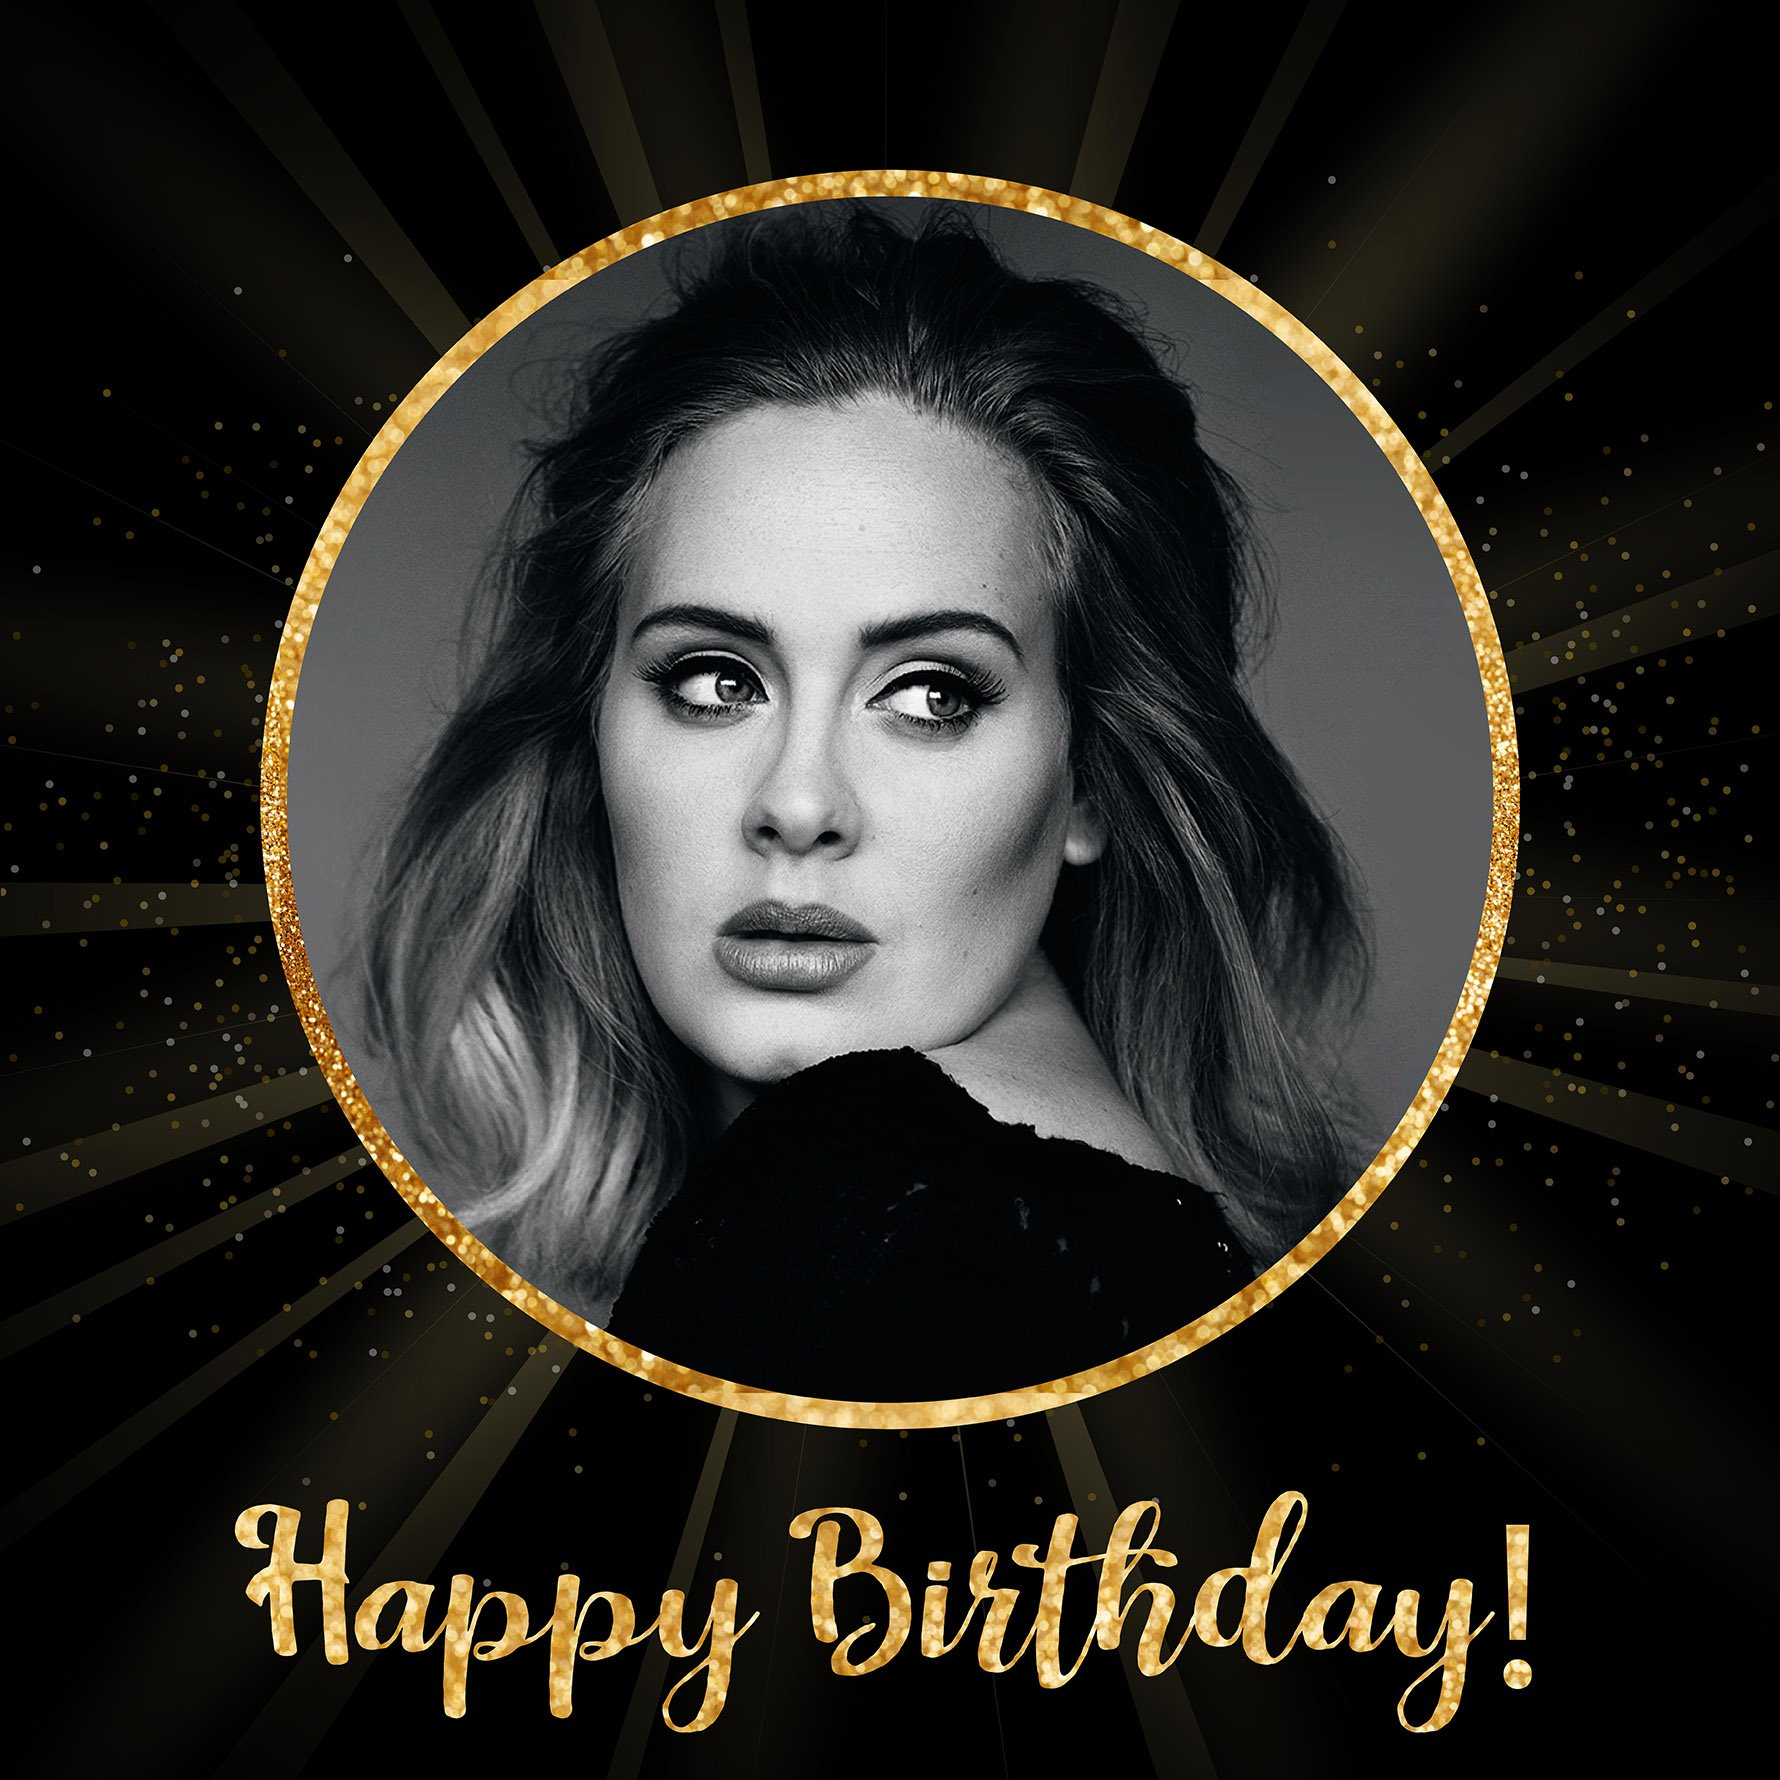 Happy Birthday to the beautiful and talented Adele!